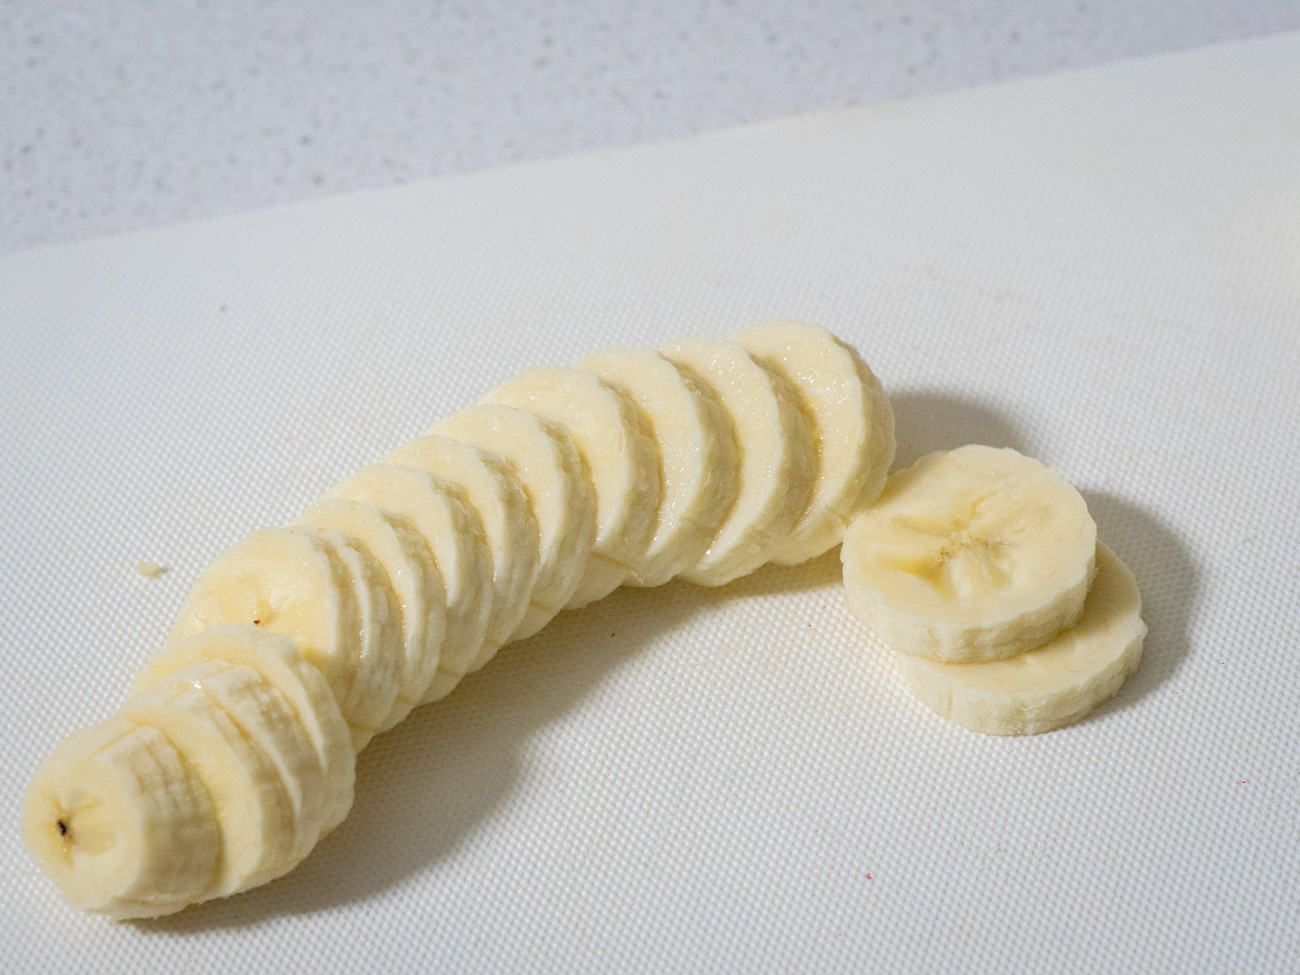 Slice bananas and place half a sliced banana around the rim of each bowl or cup.